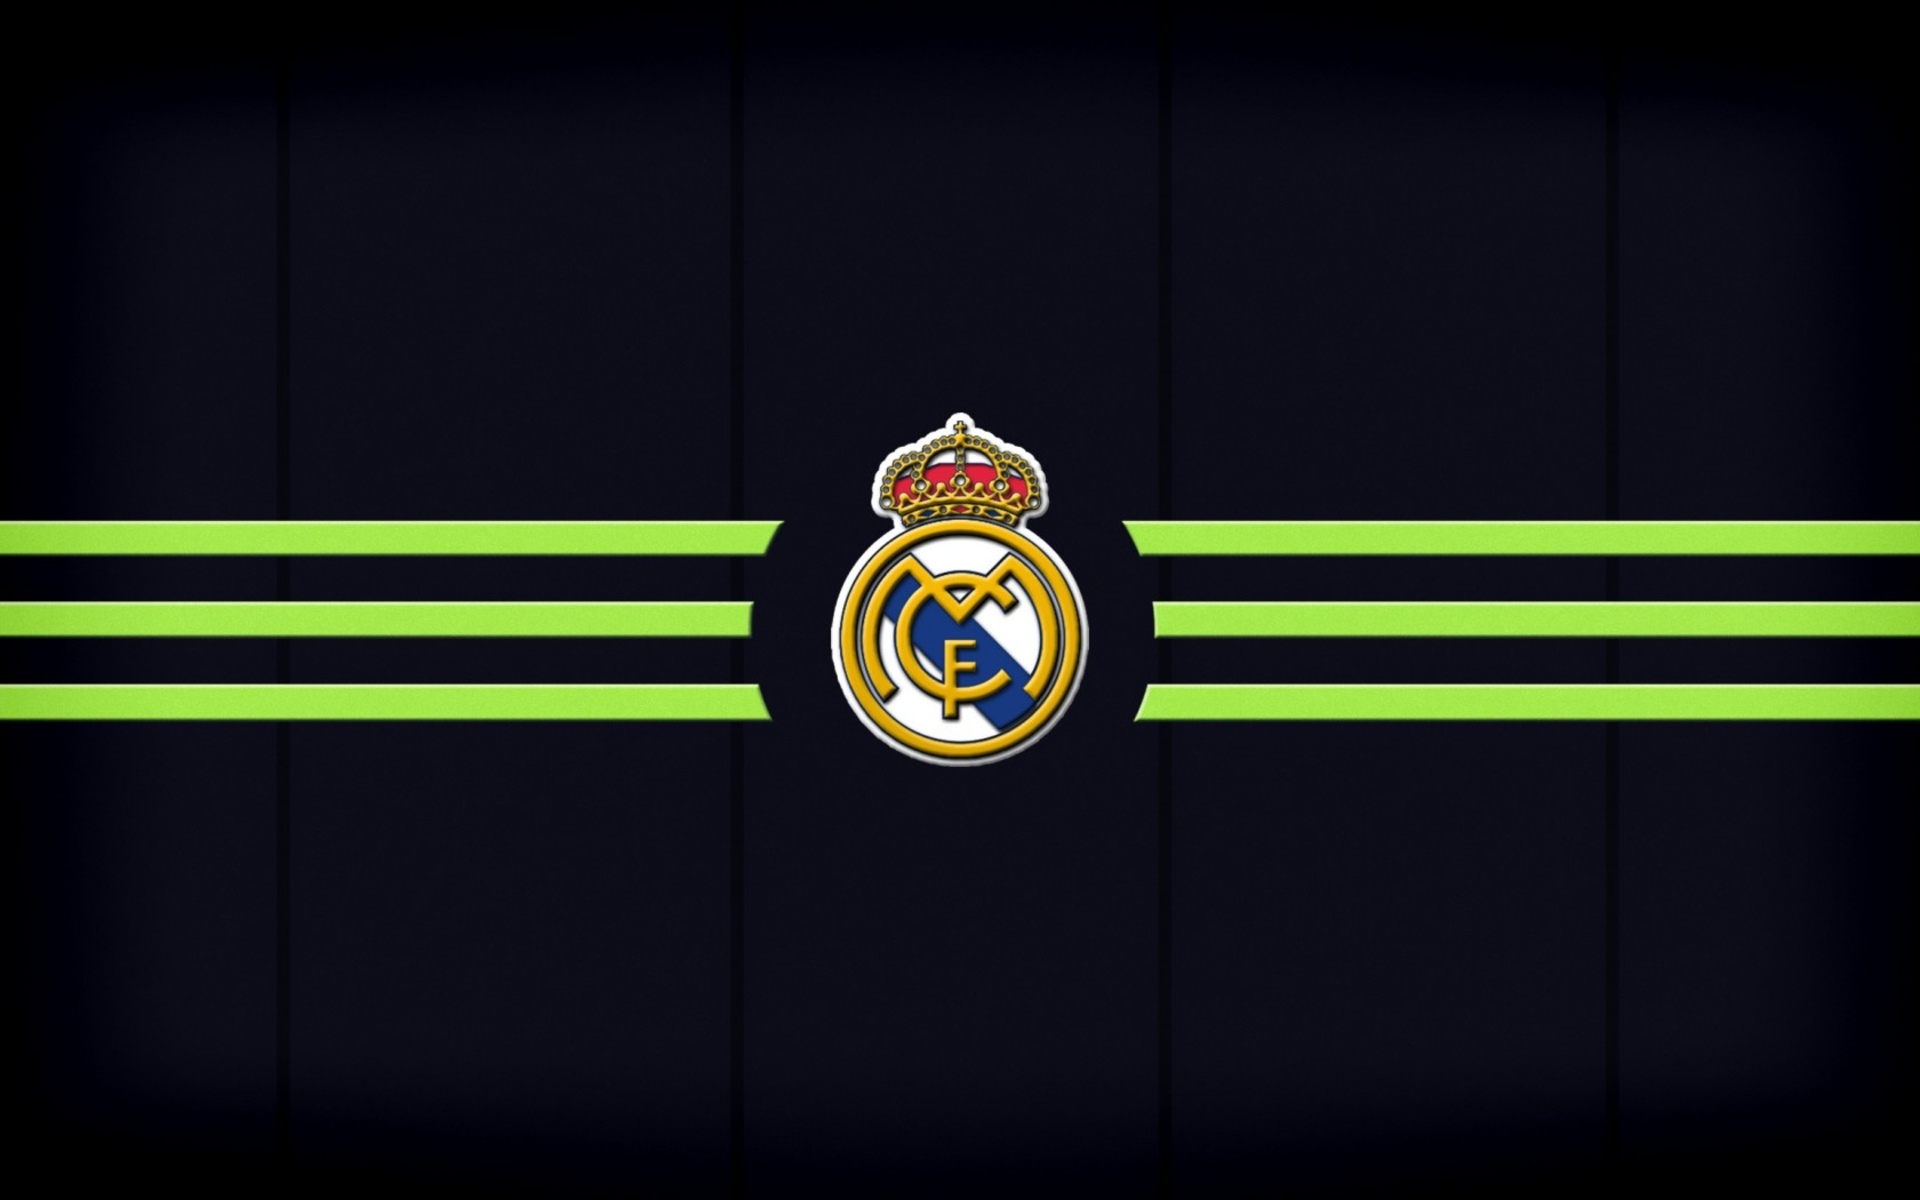 AMB-provides-you-the-latest-Real-Madrid-HD-We-update-the-latest-collection-of-wallpaper-wpc5802073